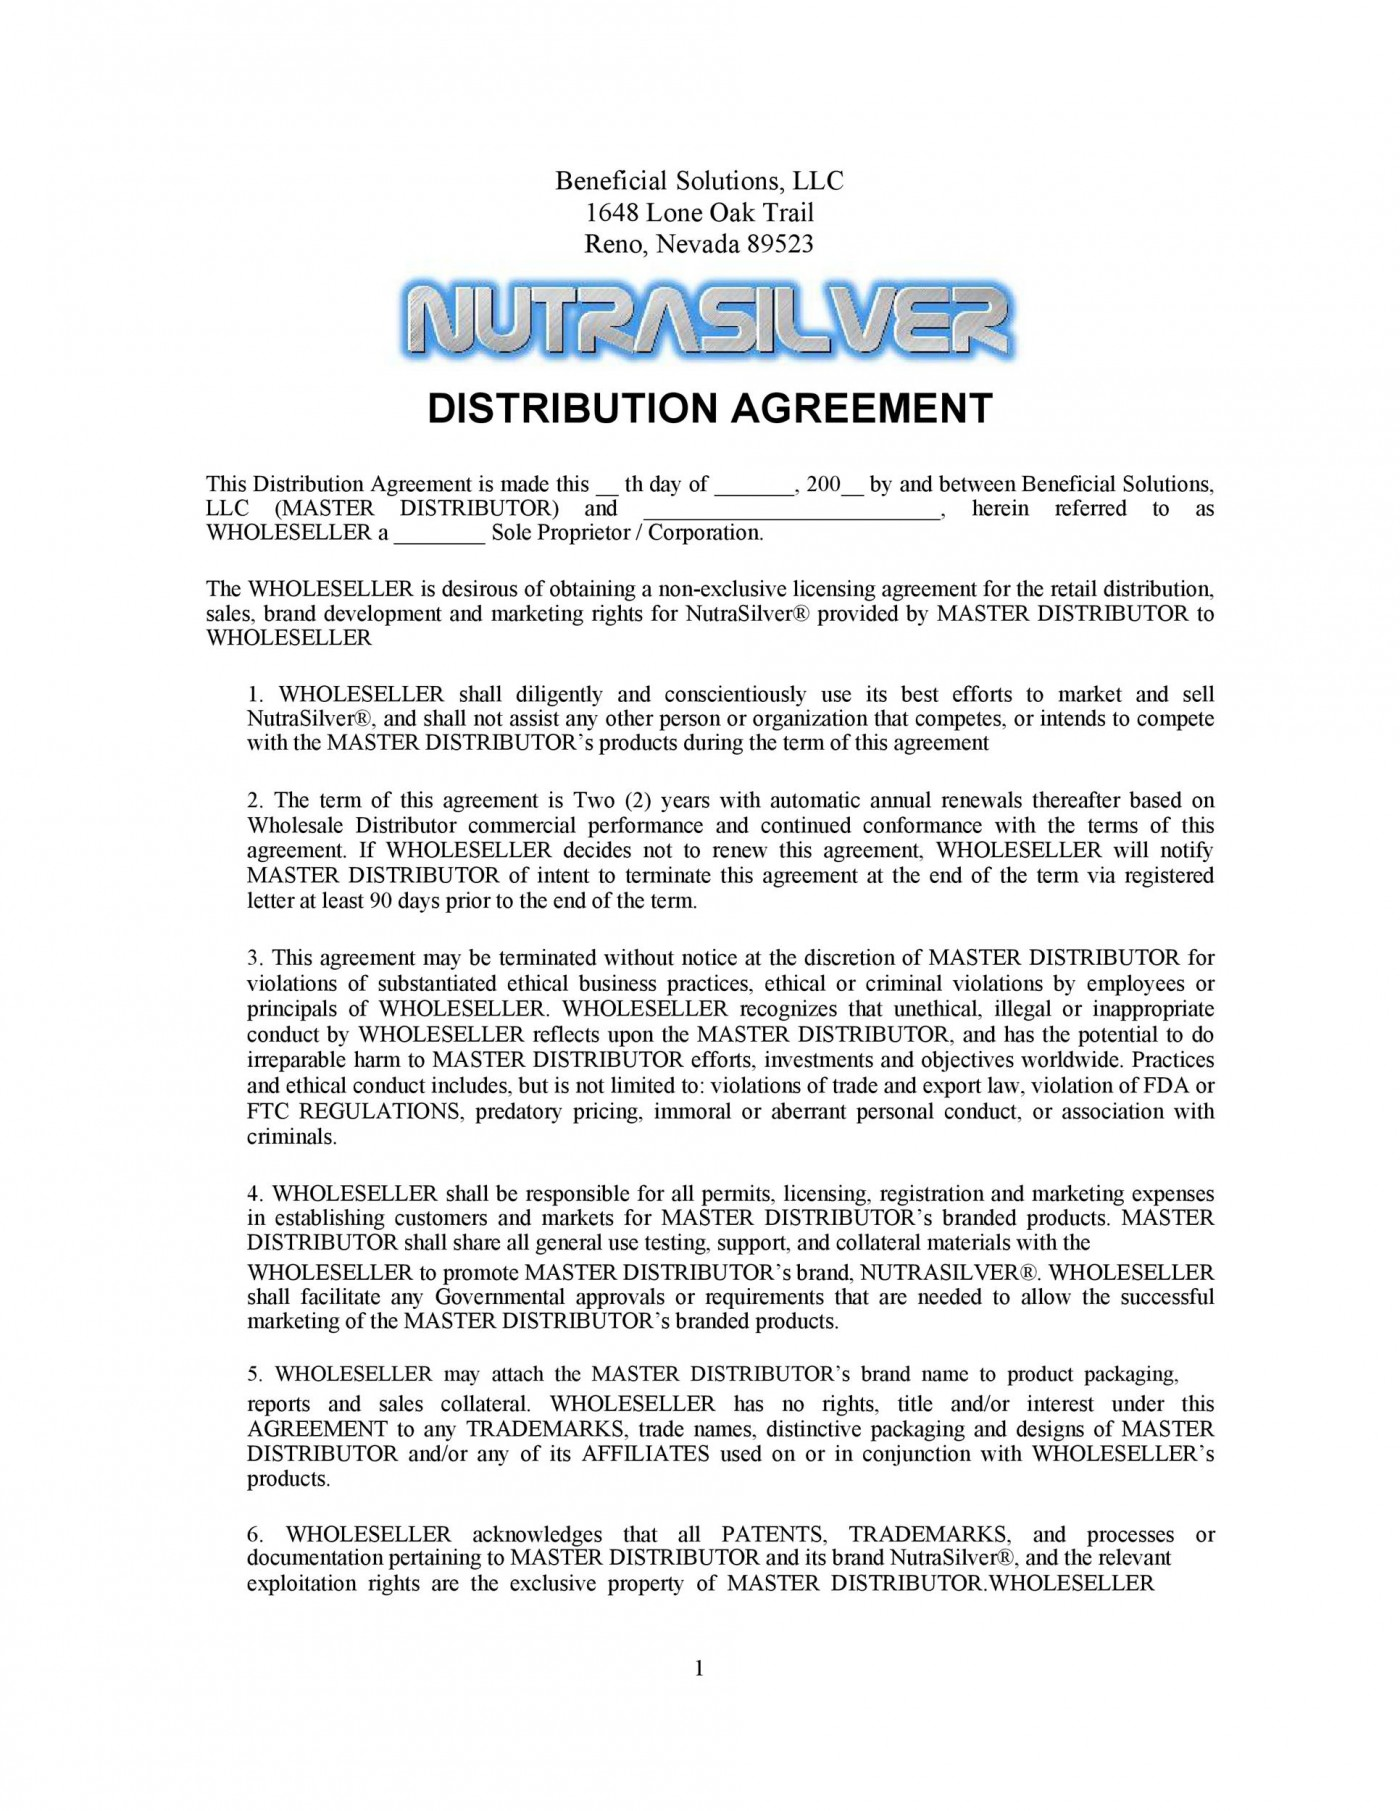 004 Stirring Exclusive Distribution Contract Template Concept  Agreement Australia Uk Non Free1400